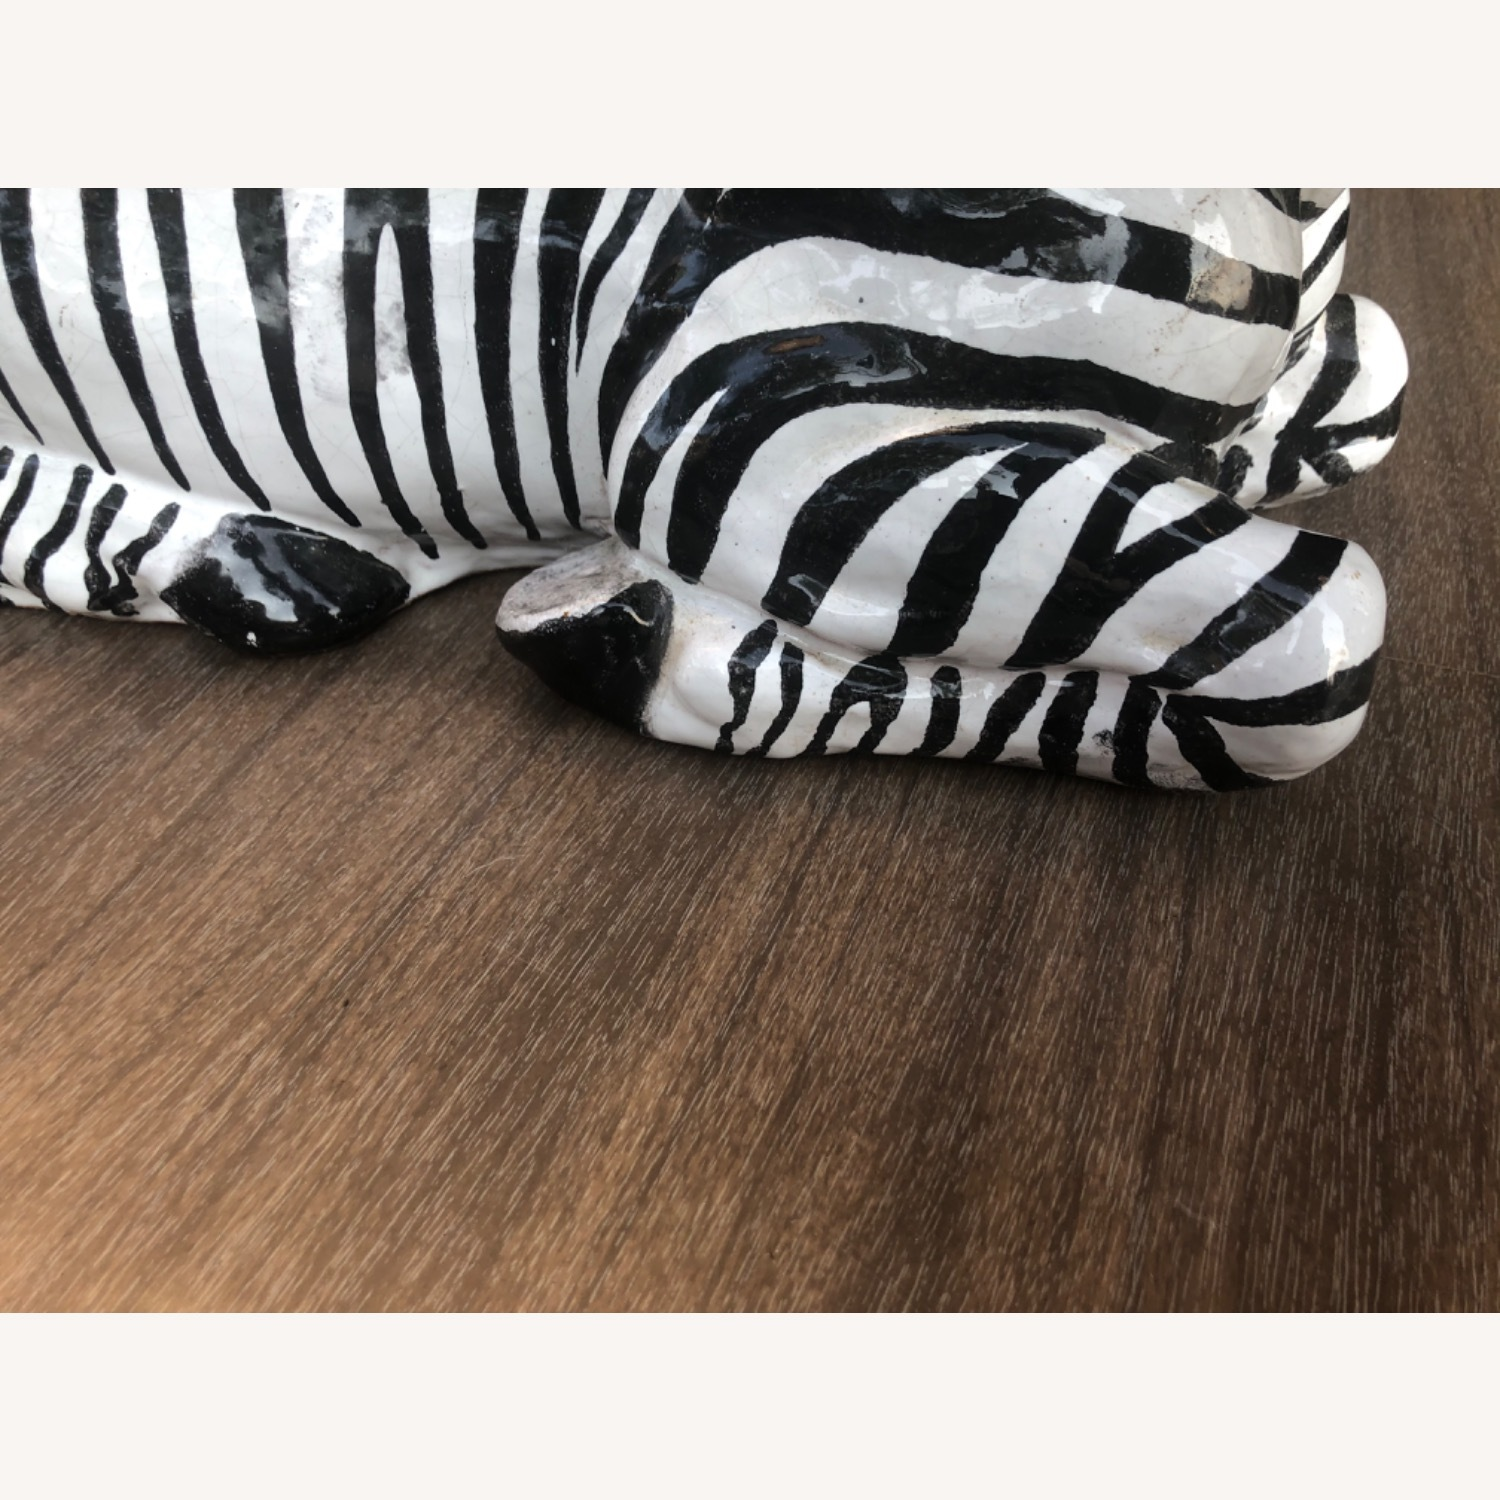 Vintage 1960s Ceramic Zebra Made in Italy - image-9